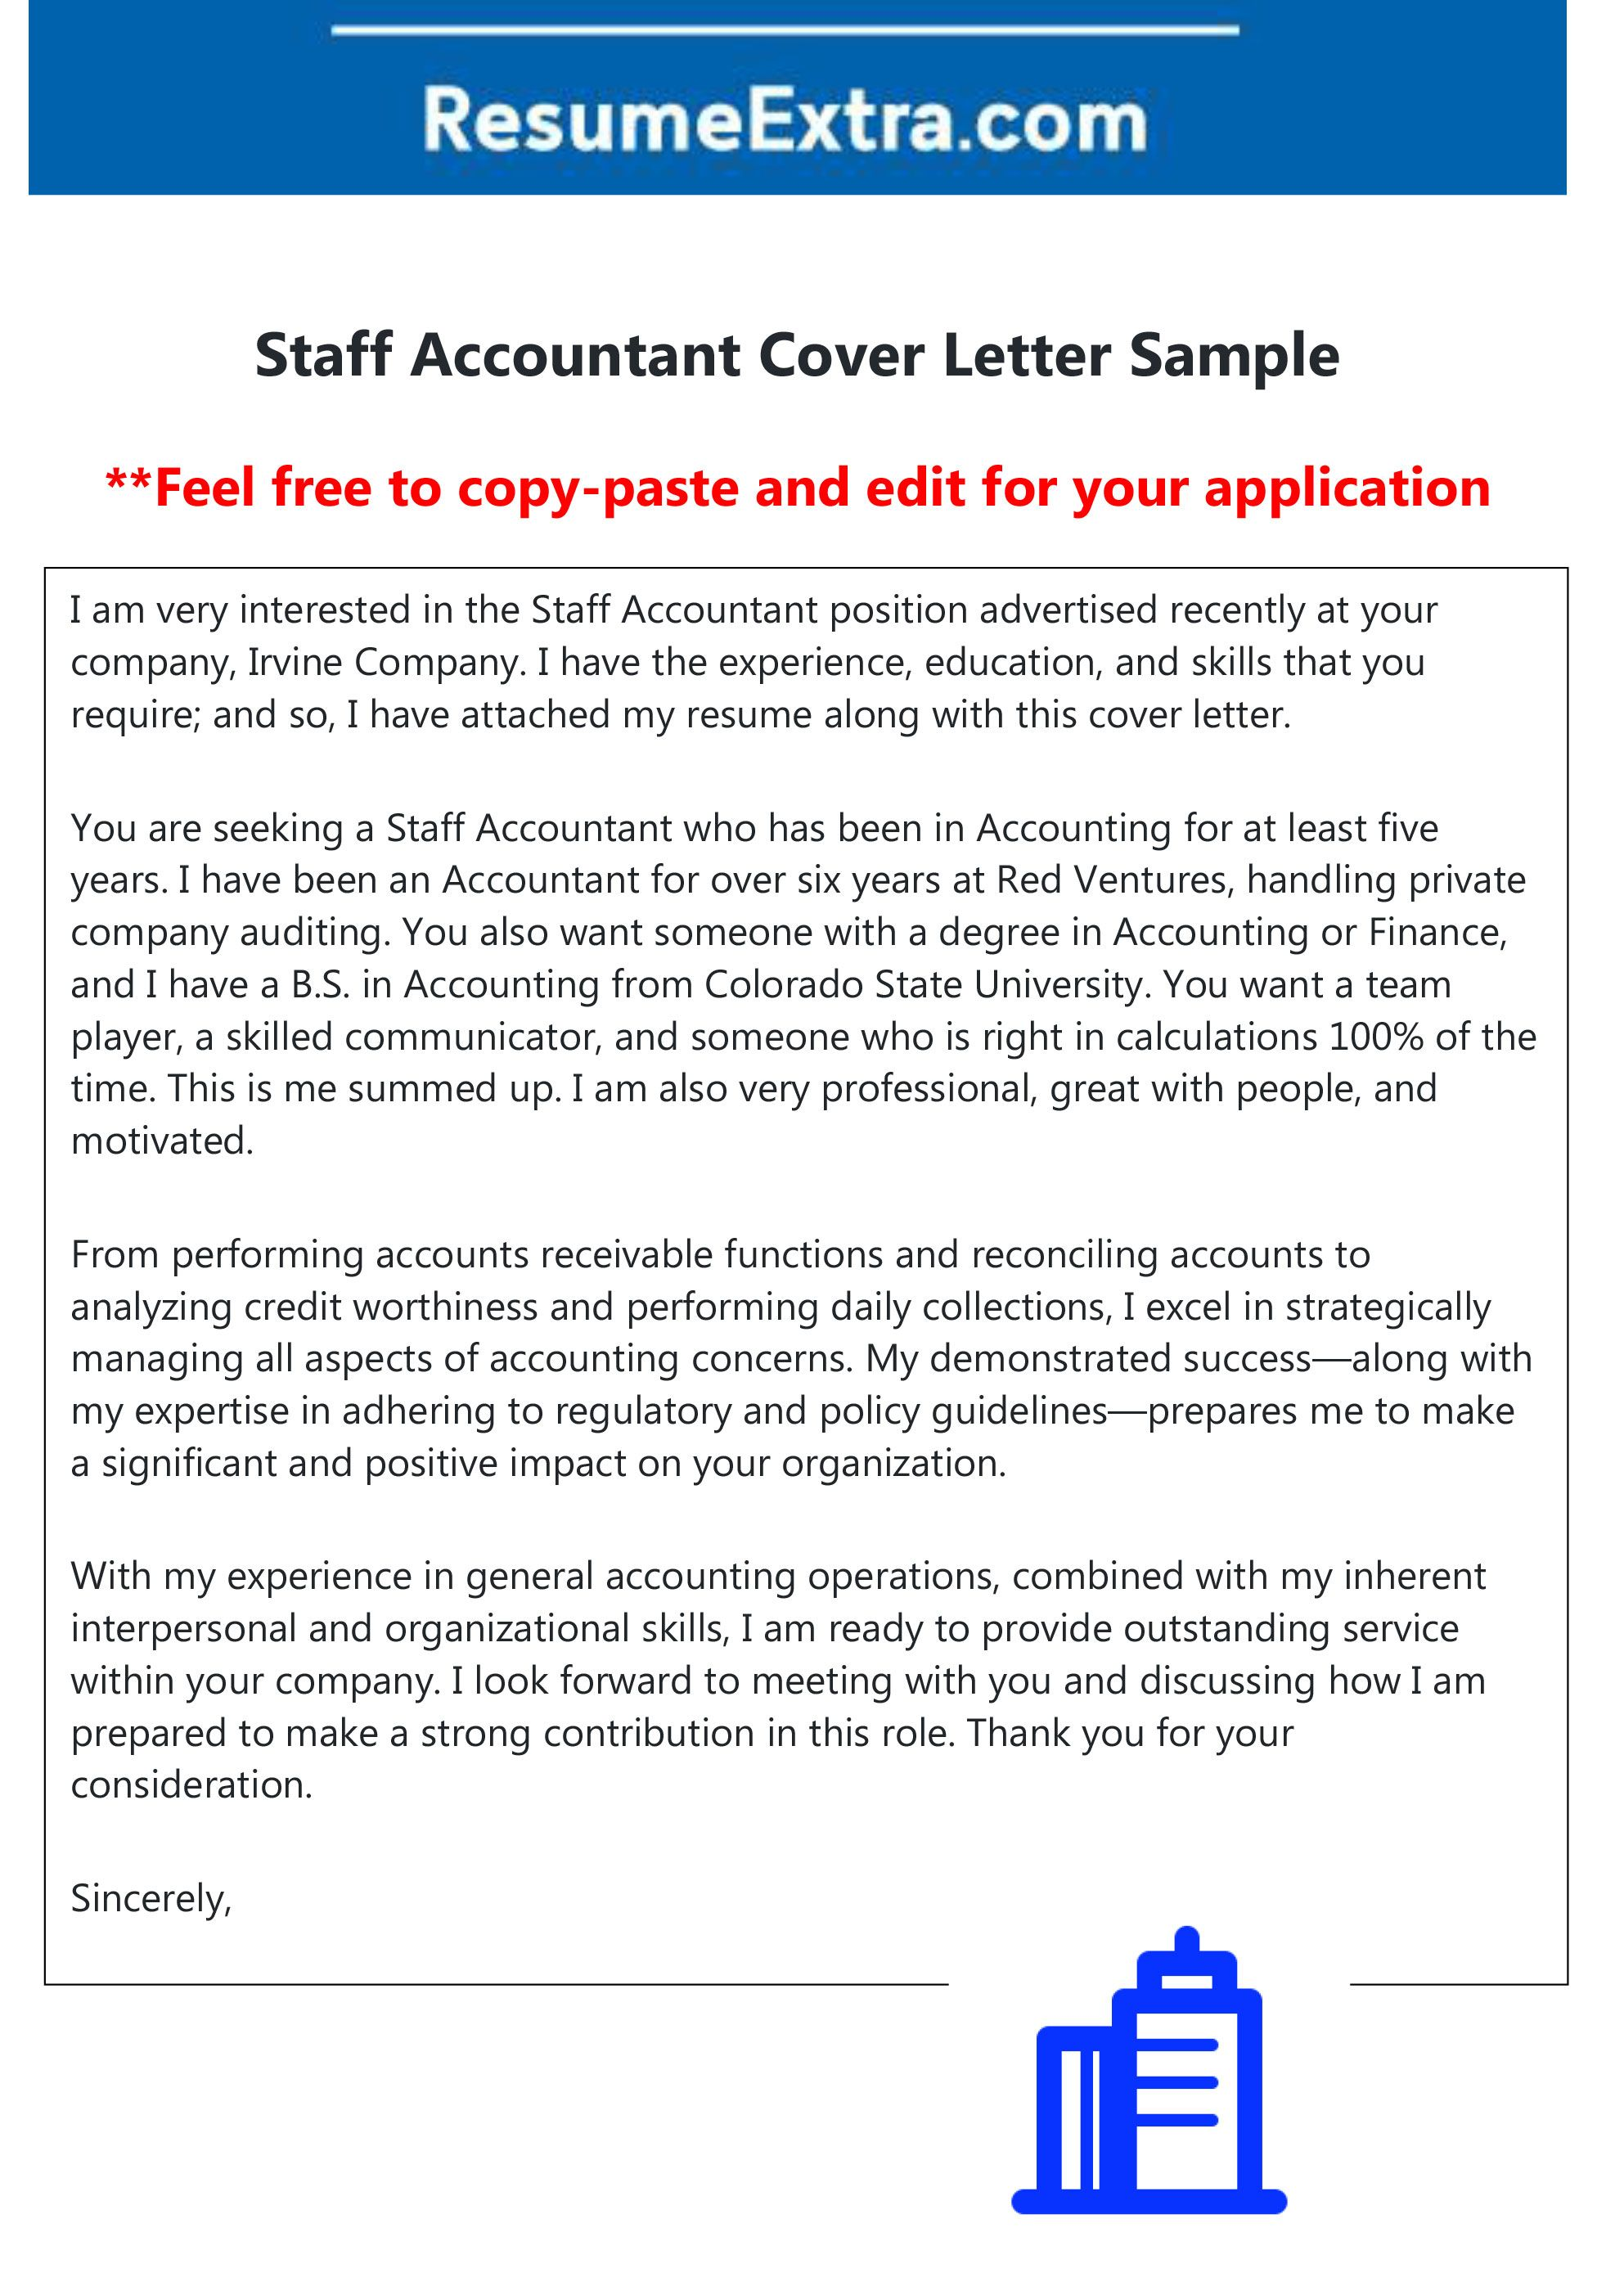 Here is a free sample of staff accountant cover letter